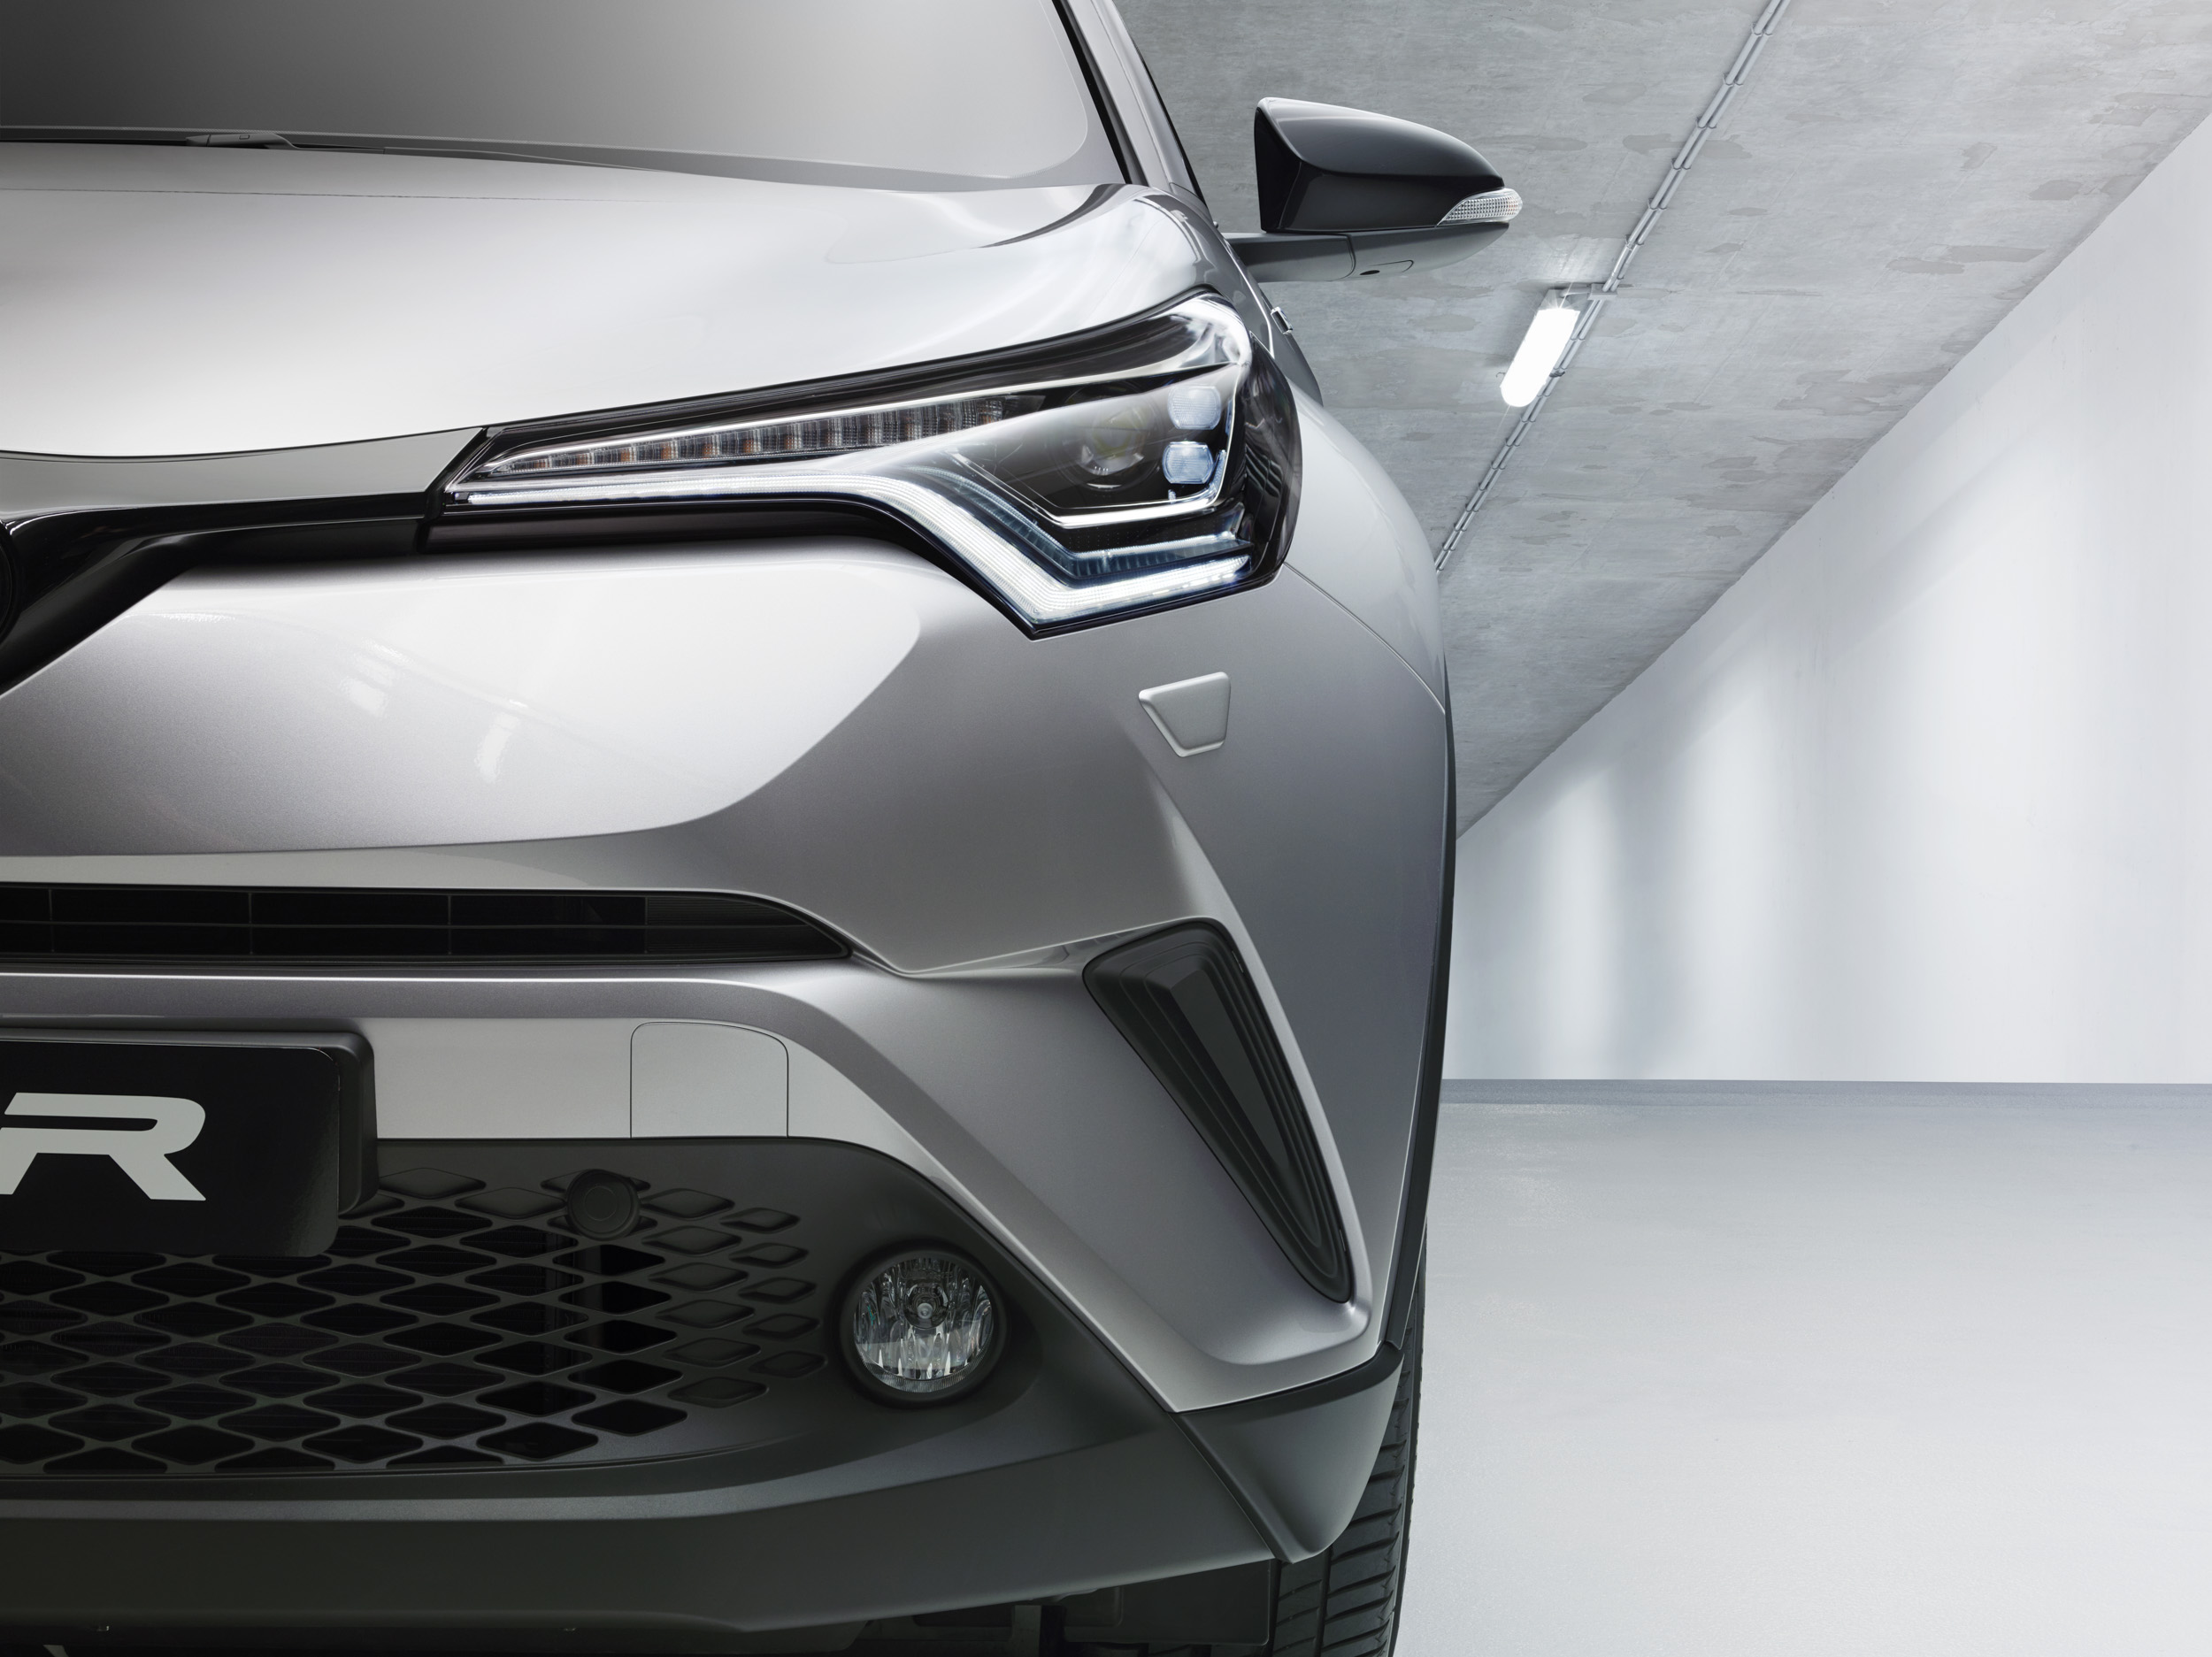 Toyota C-HR lights